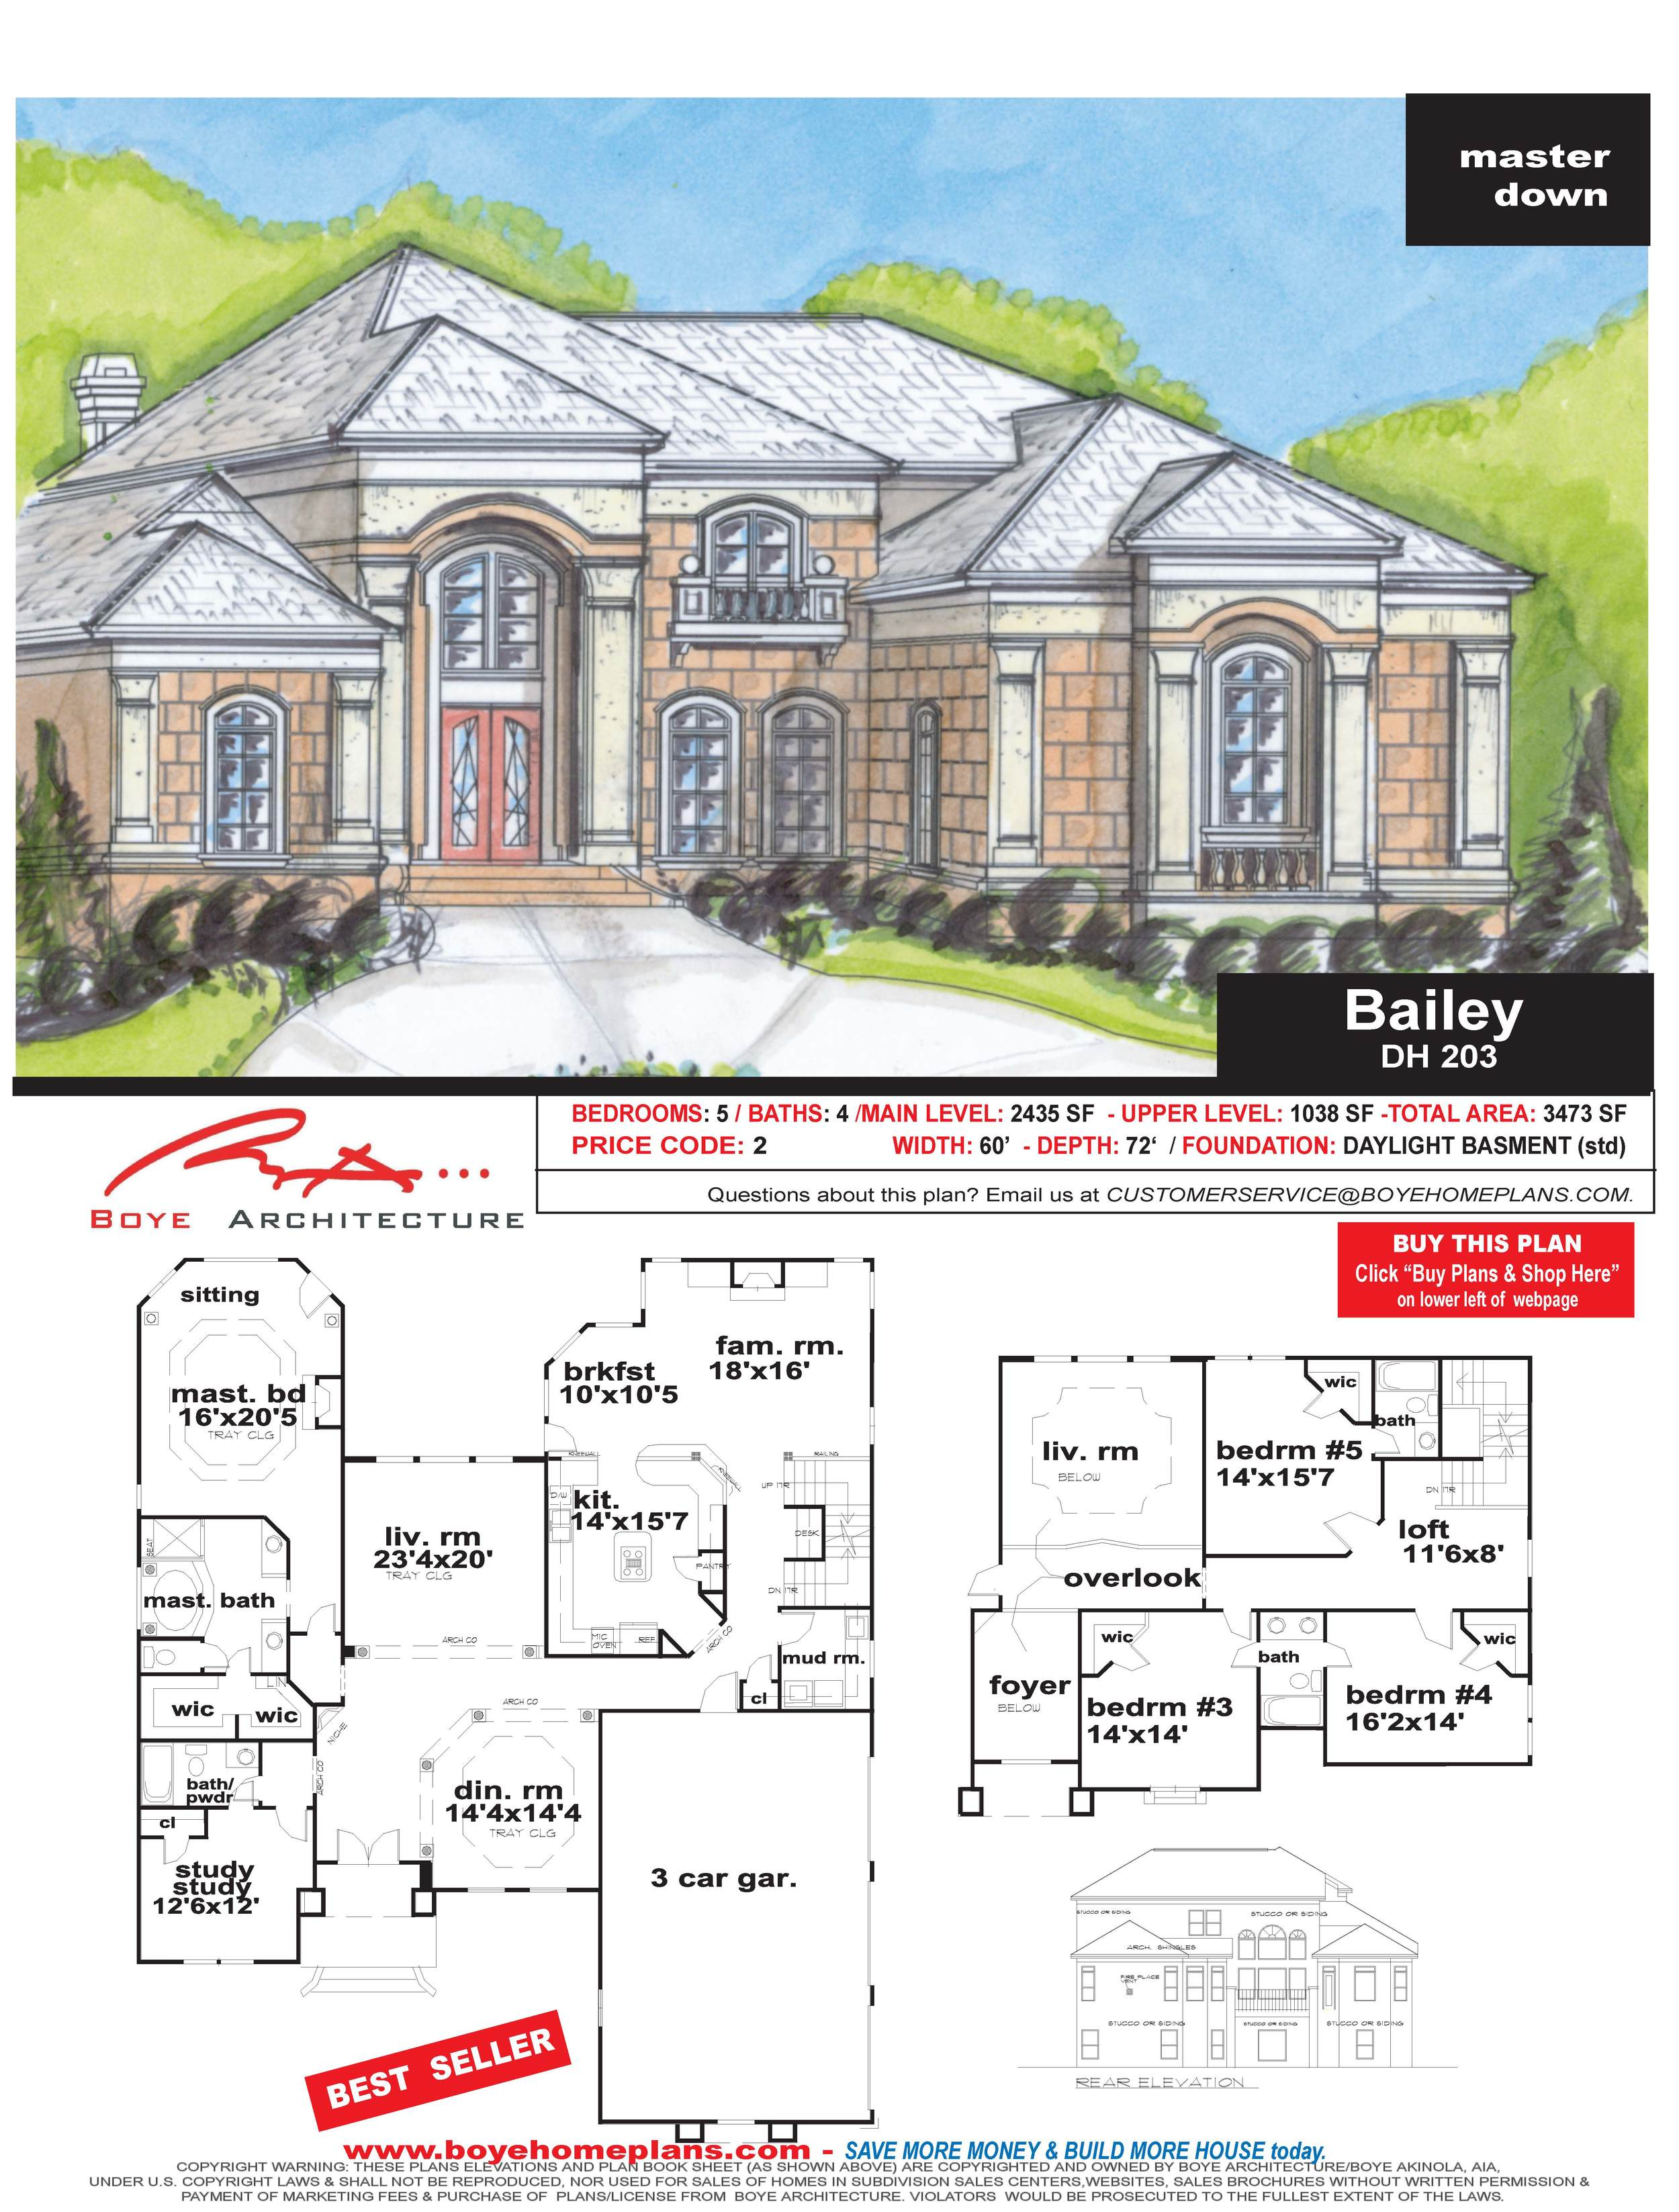 BAILEY PLAN PAGE-DH203-061508.jpg